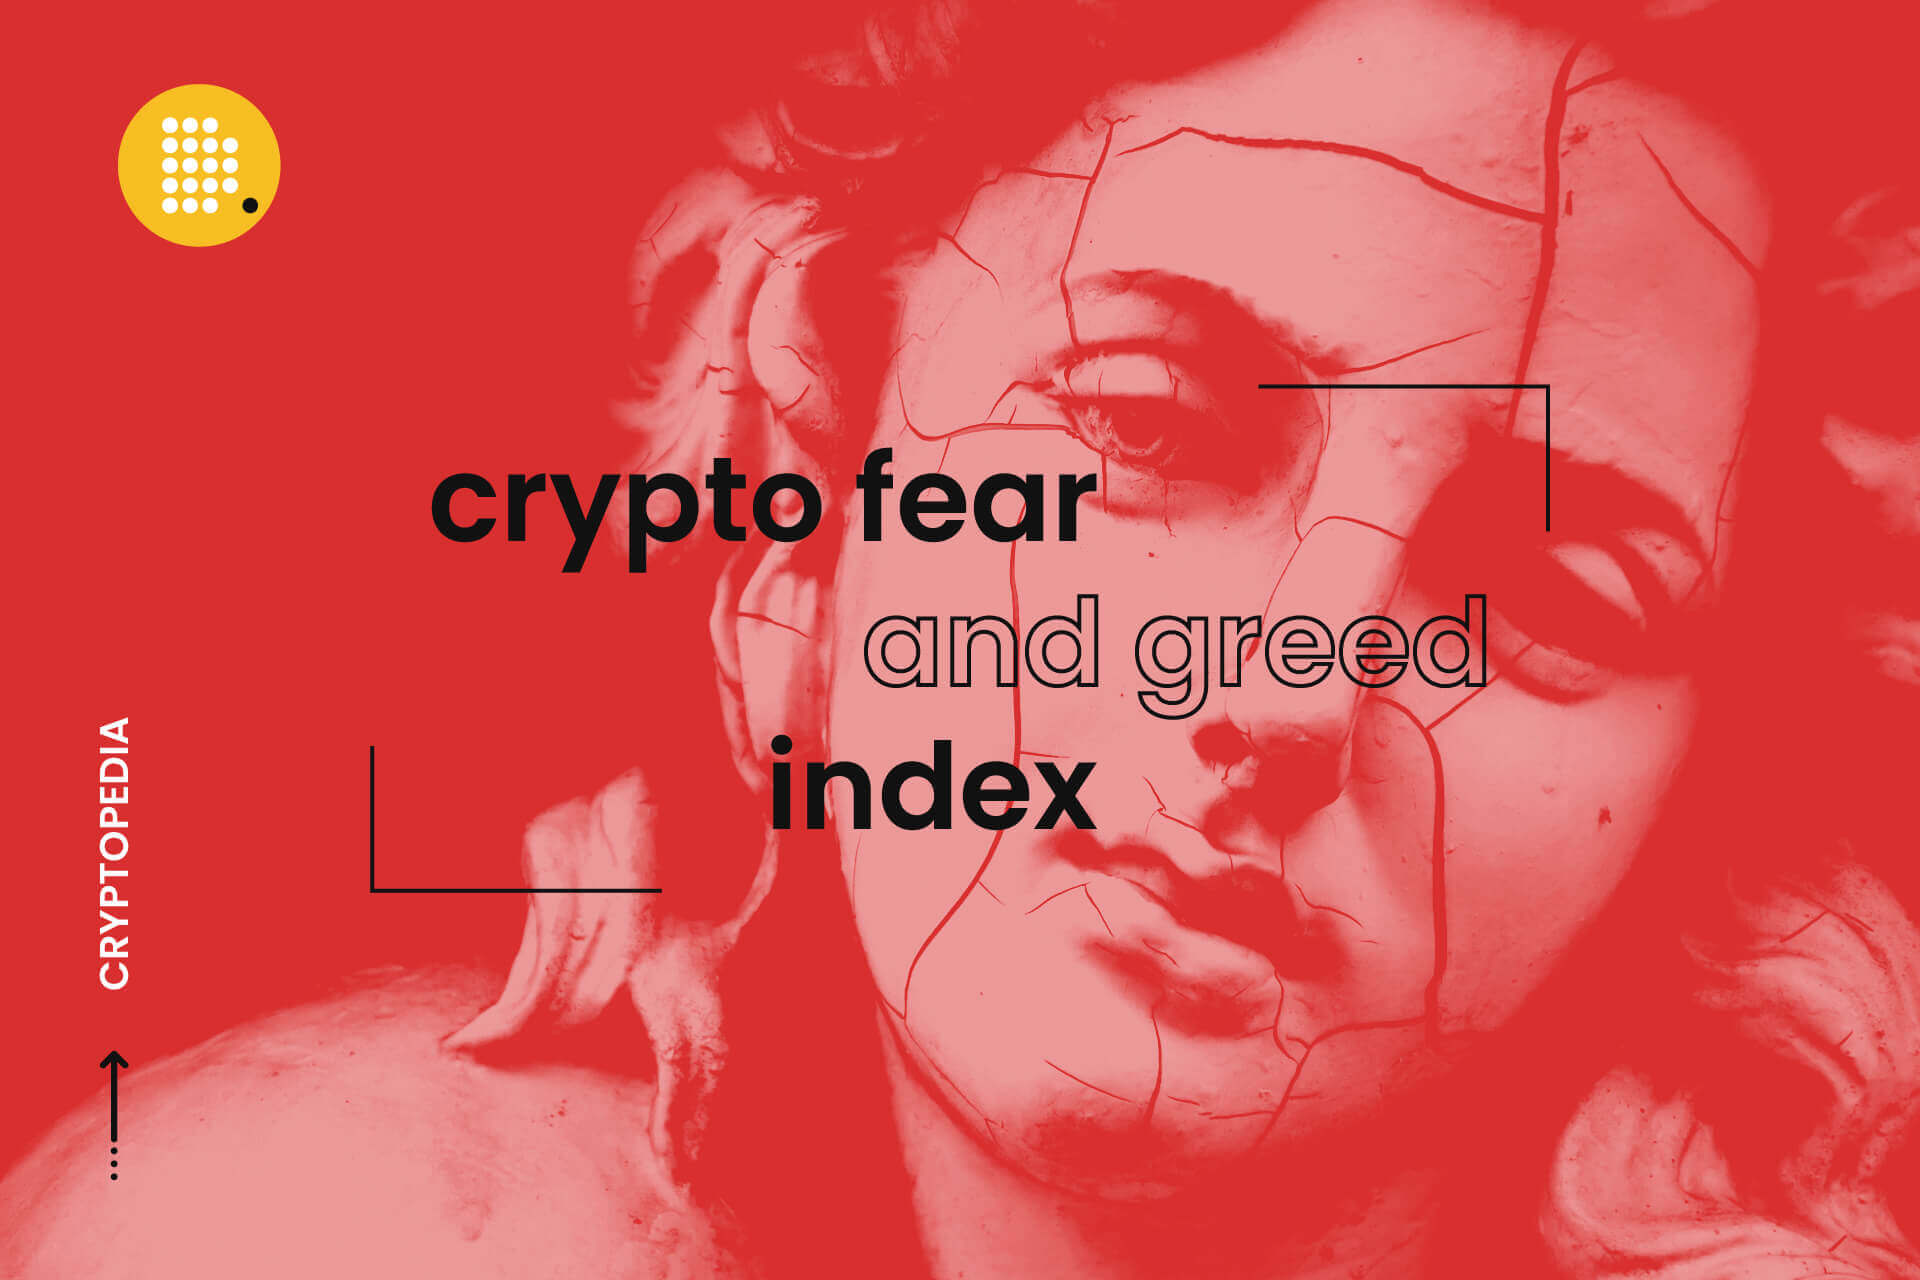 crypto fear and greed index